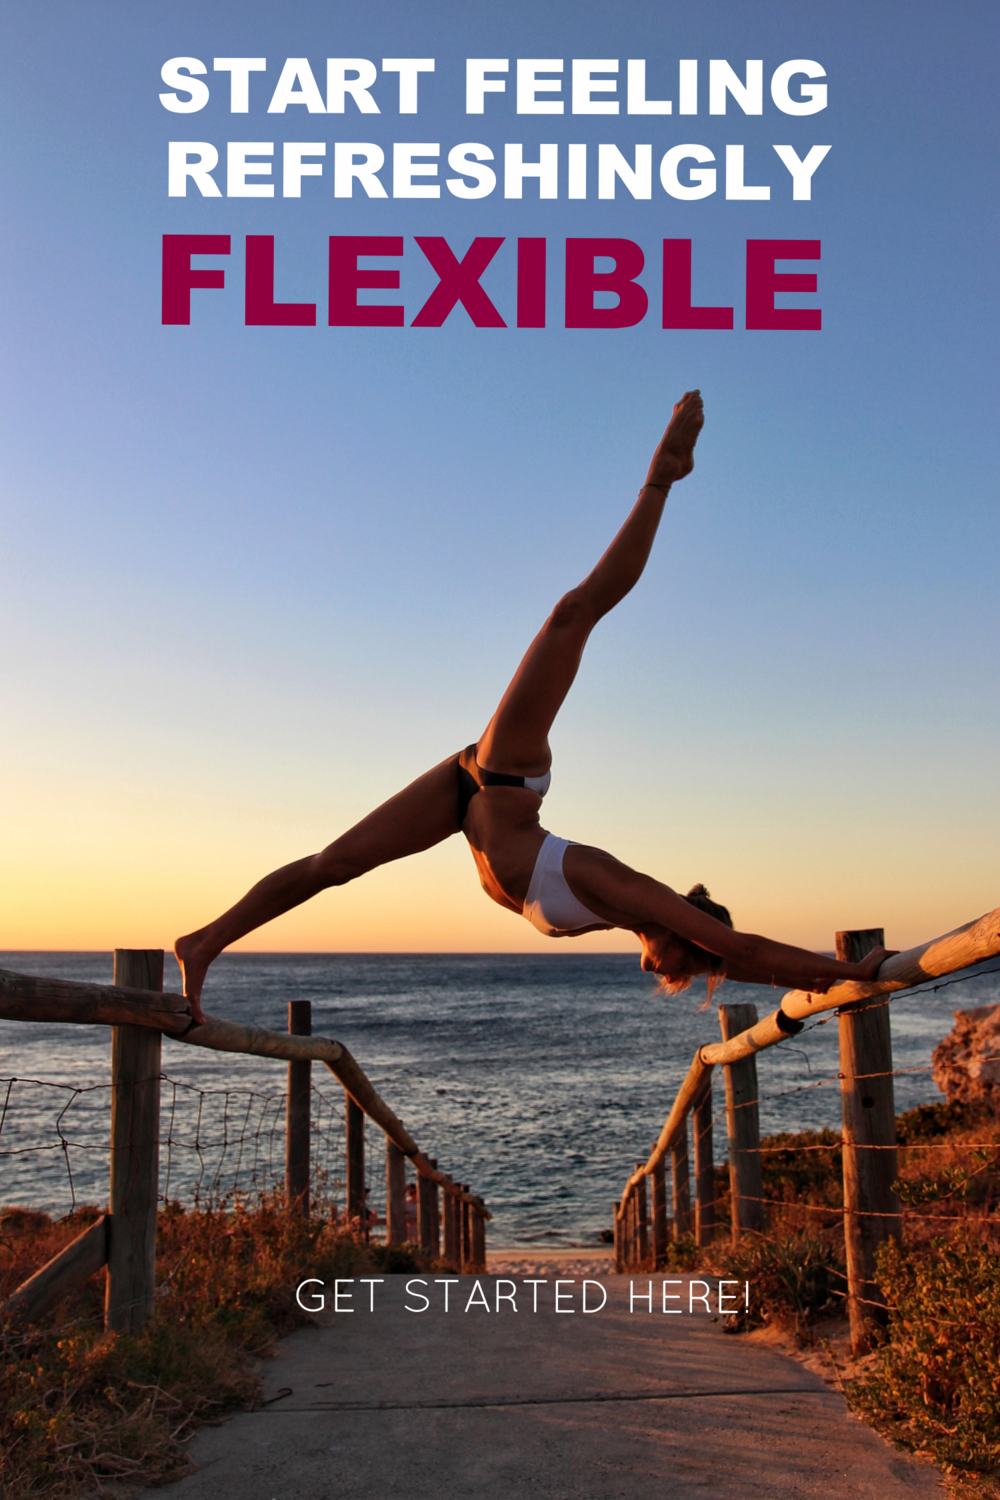 FIND OUT HOW TO STRESS LESS, RE-ENERGISE AND FEEL REFRESHINGLY FLEXIBLE!